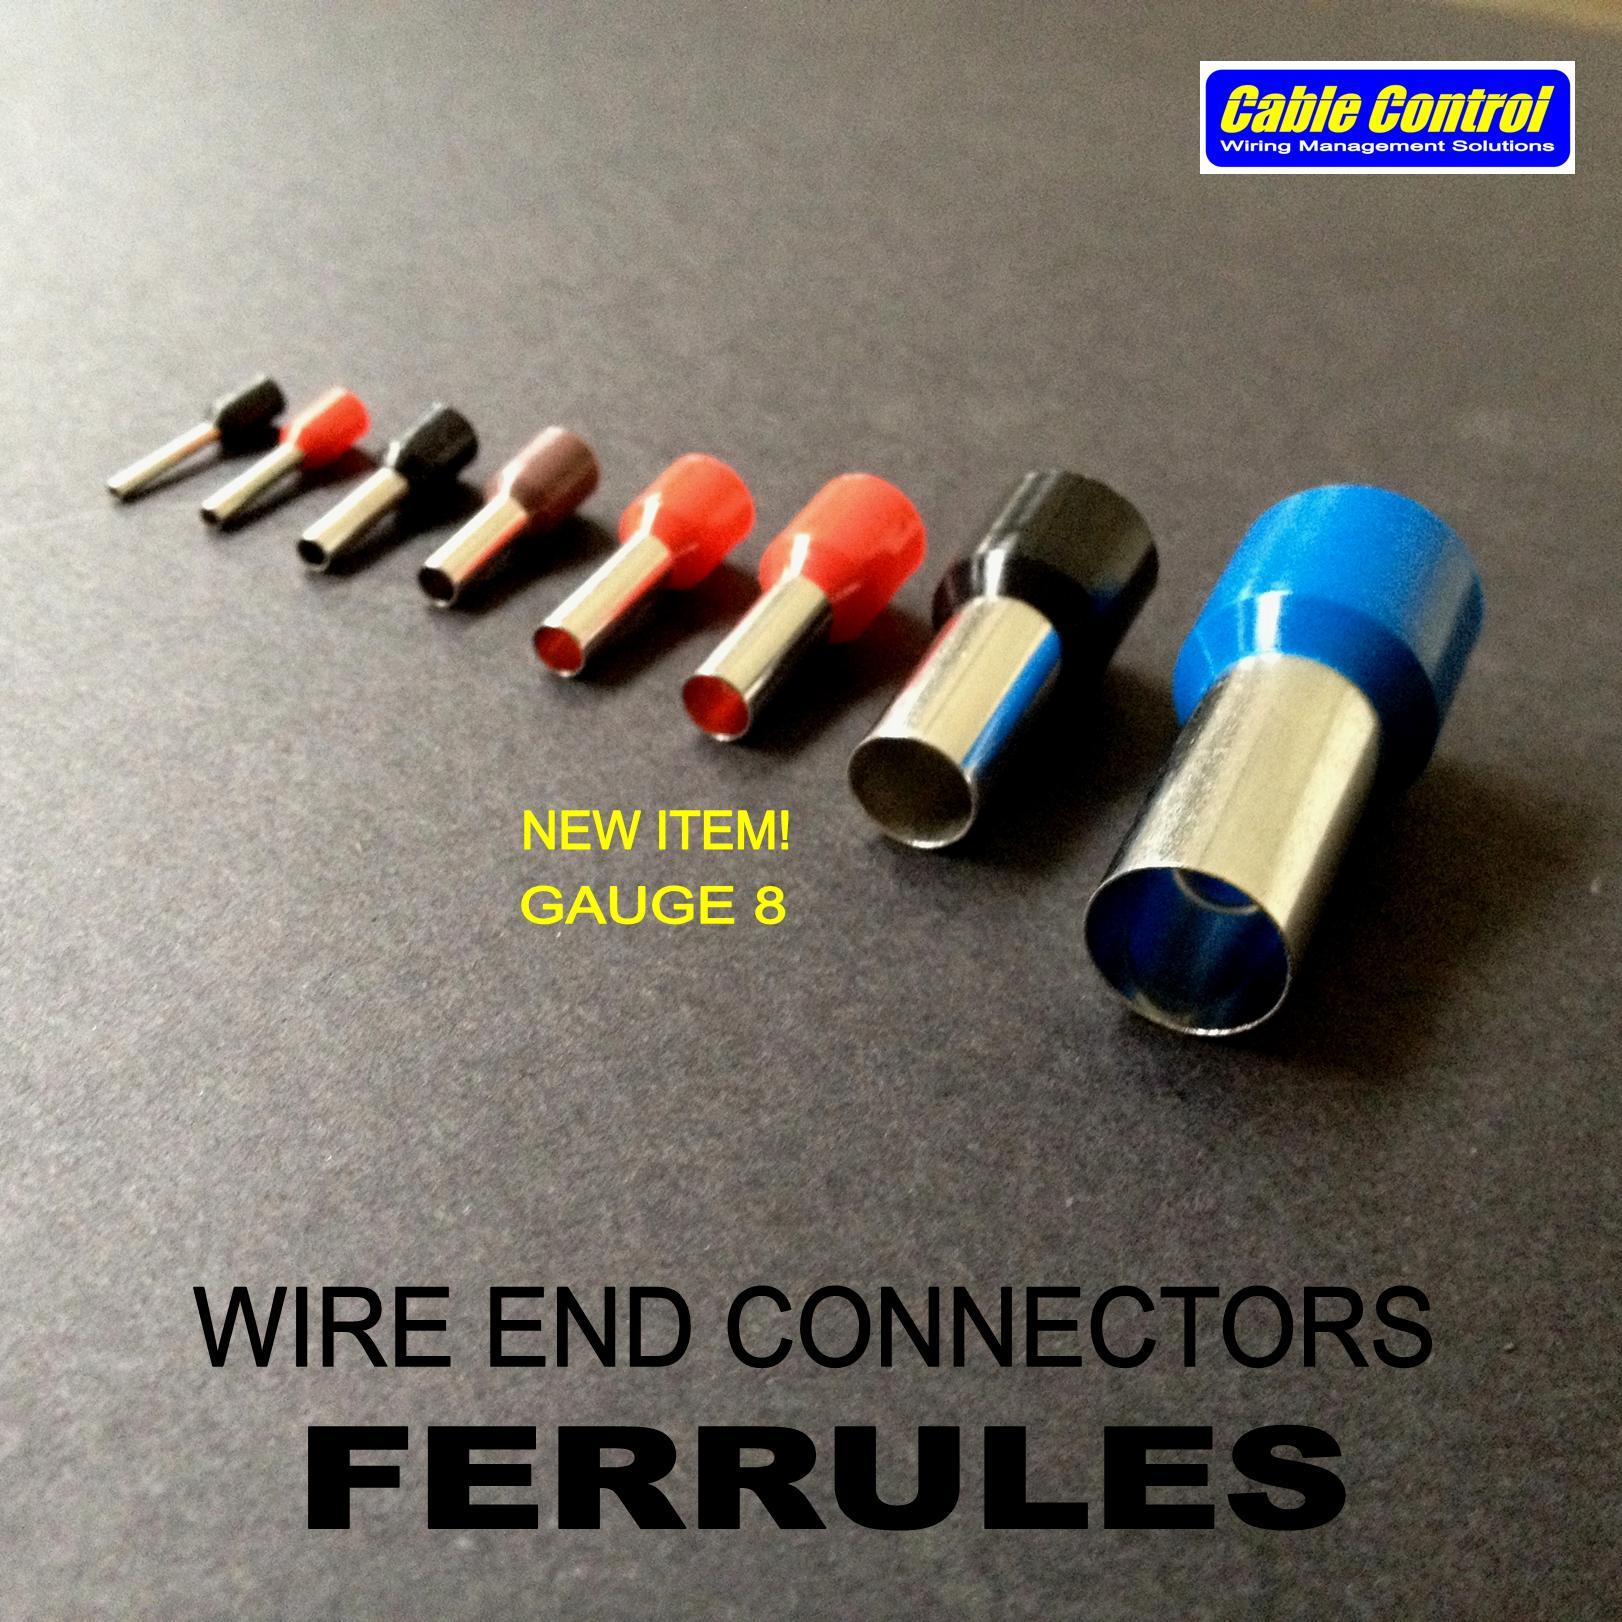 Cable Control Philippines Price List Sleeves Pipeelectric Wire Protection Tubeblack Vinyl Tube Buy Electric Ferrules End Connectors 330 Pcs Set All Sizes